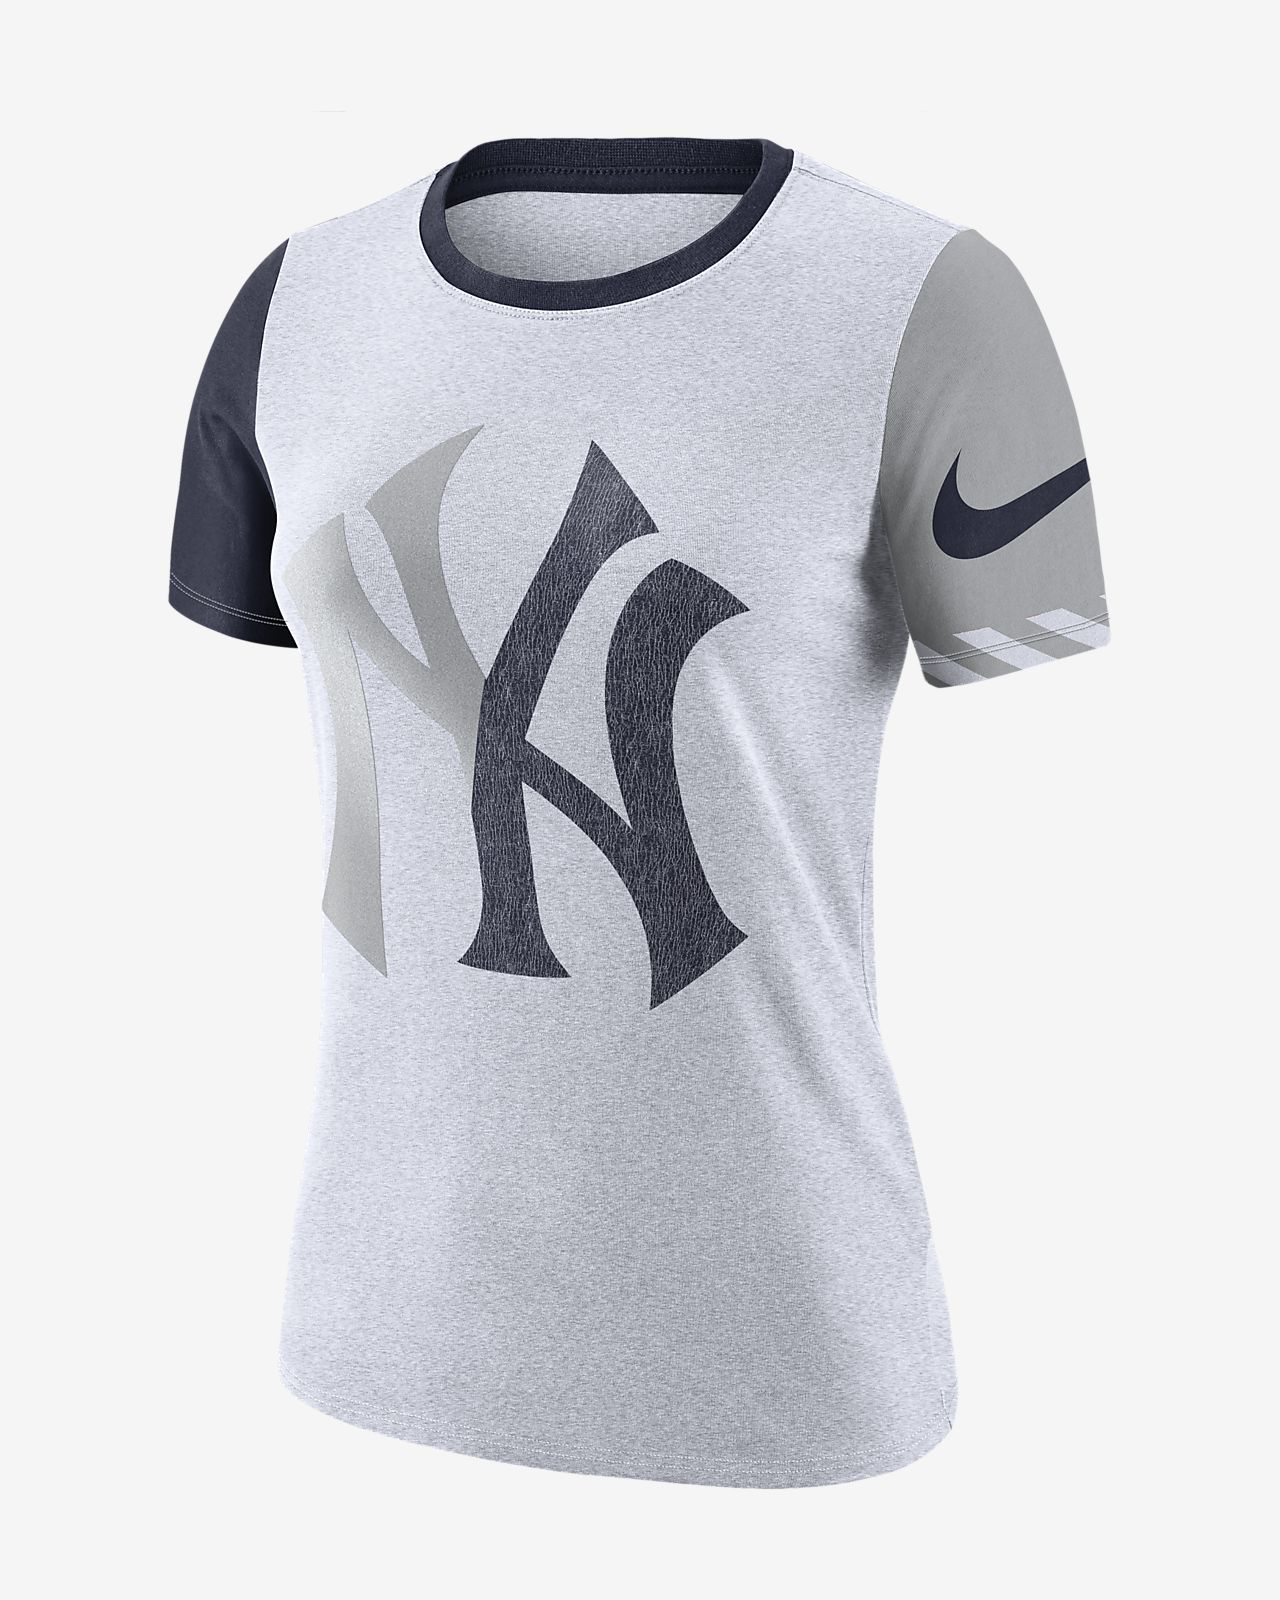 Nike Dri-FIT (MLB Yankees) Women s T-Shirt. Nike.com 0ac06c3727a